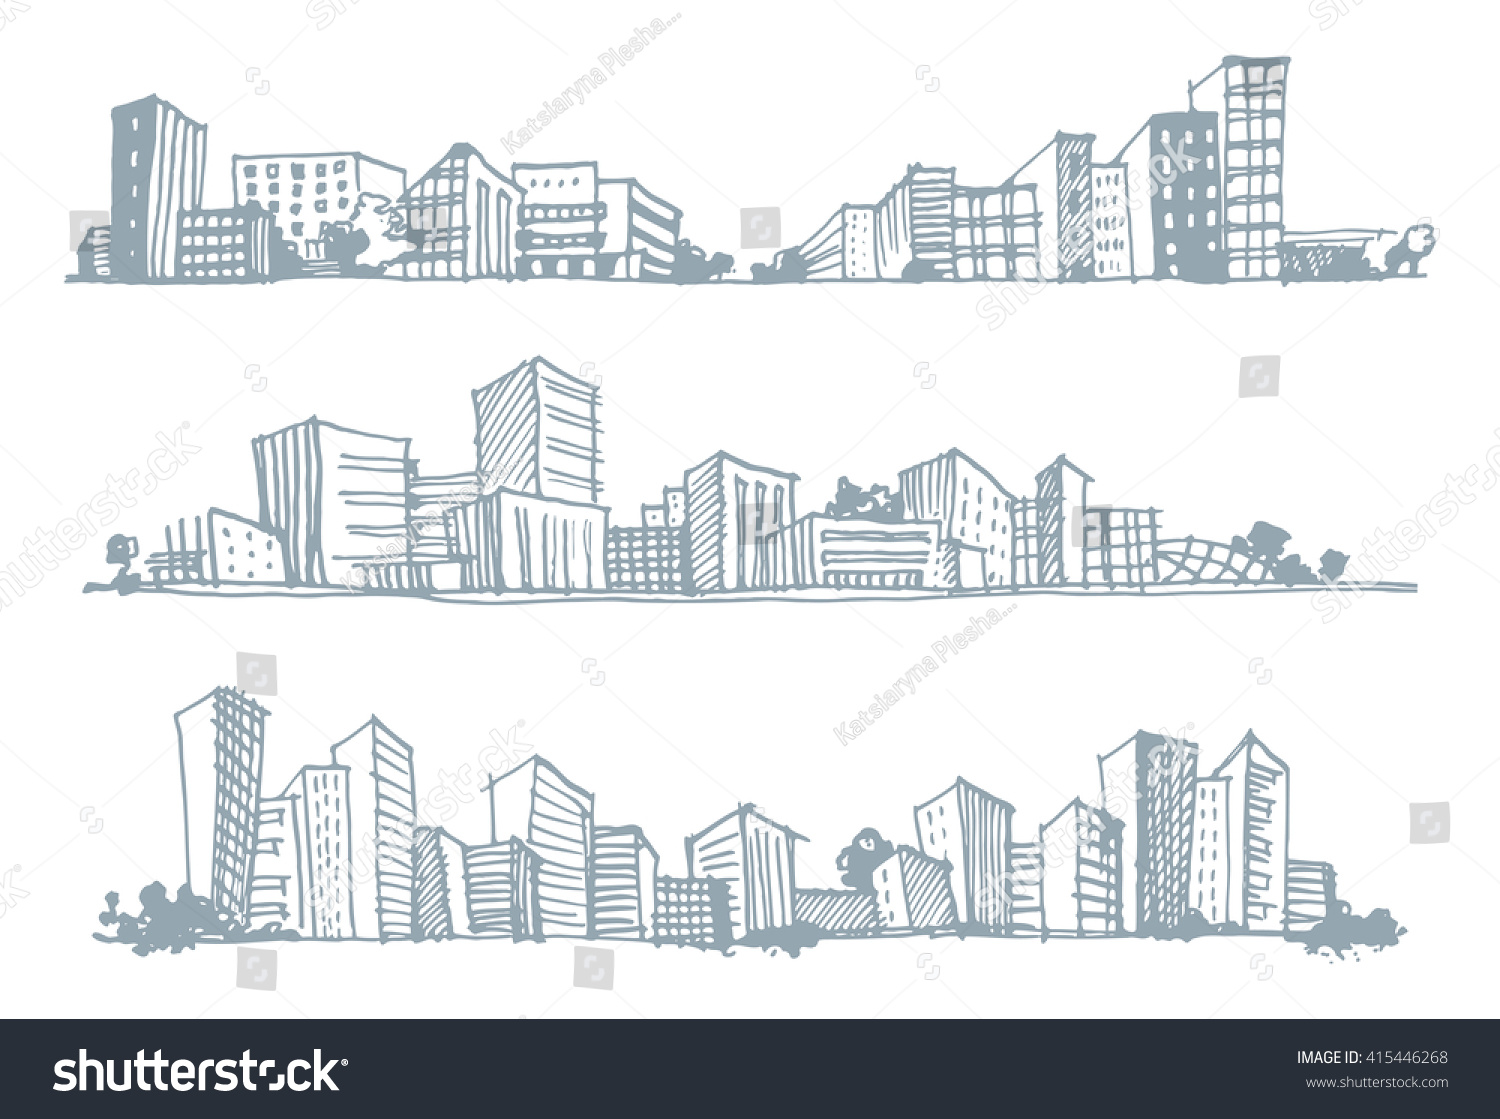 Hand drawn sketches of urban silhouettes Vector illustration